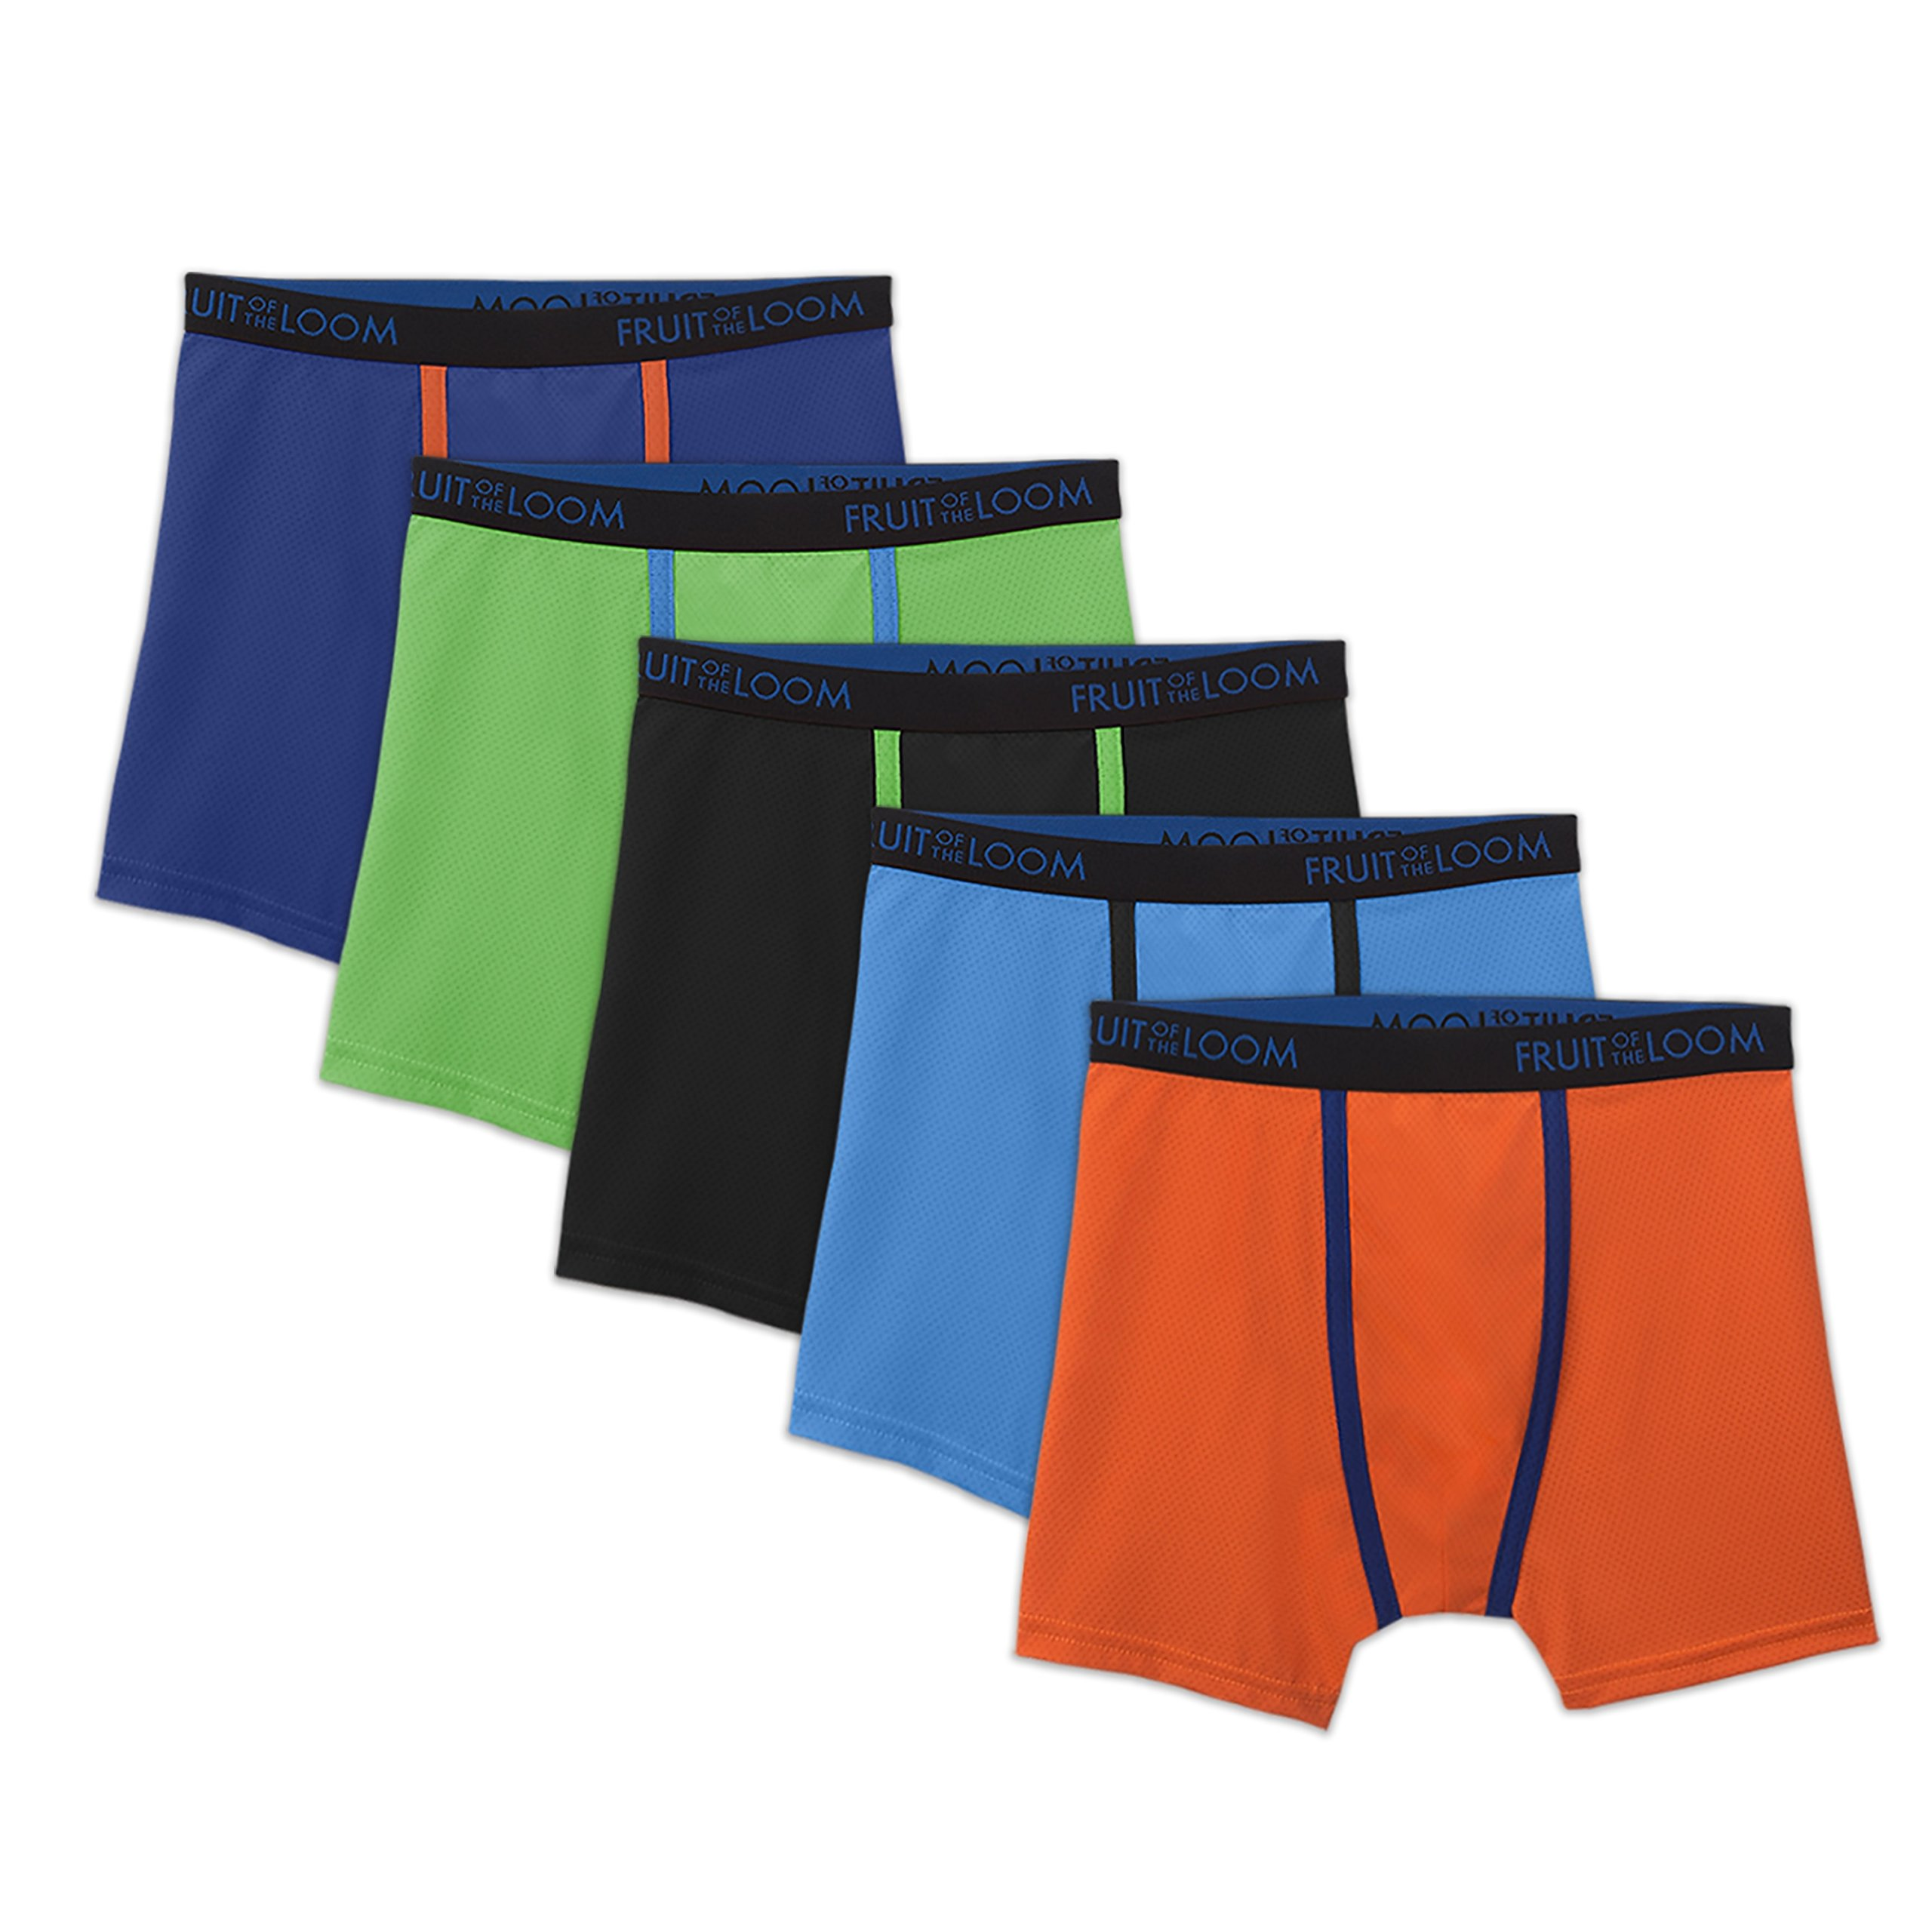 2c570ffee5de3 Fruit of the Loom Boys 5 Pack Breathable Boxer Brief Underwear product image